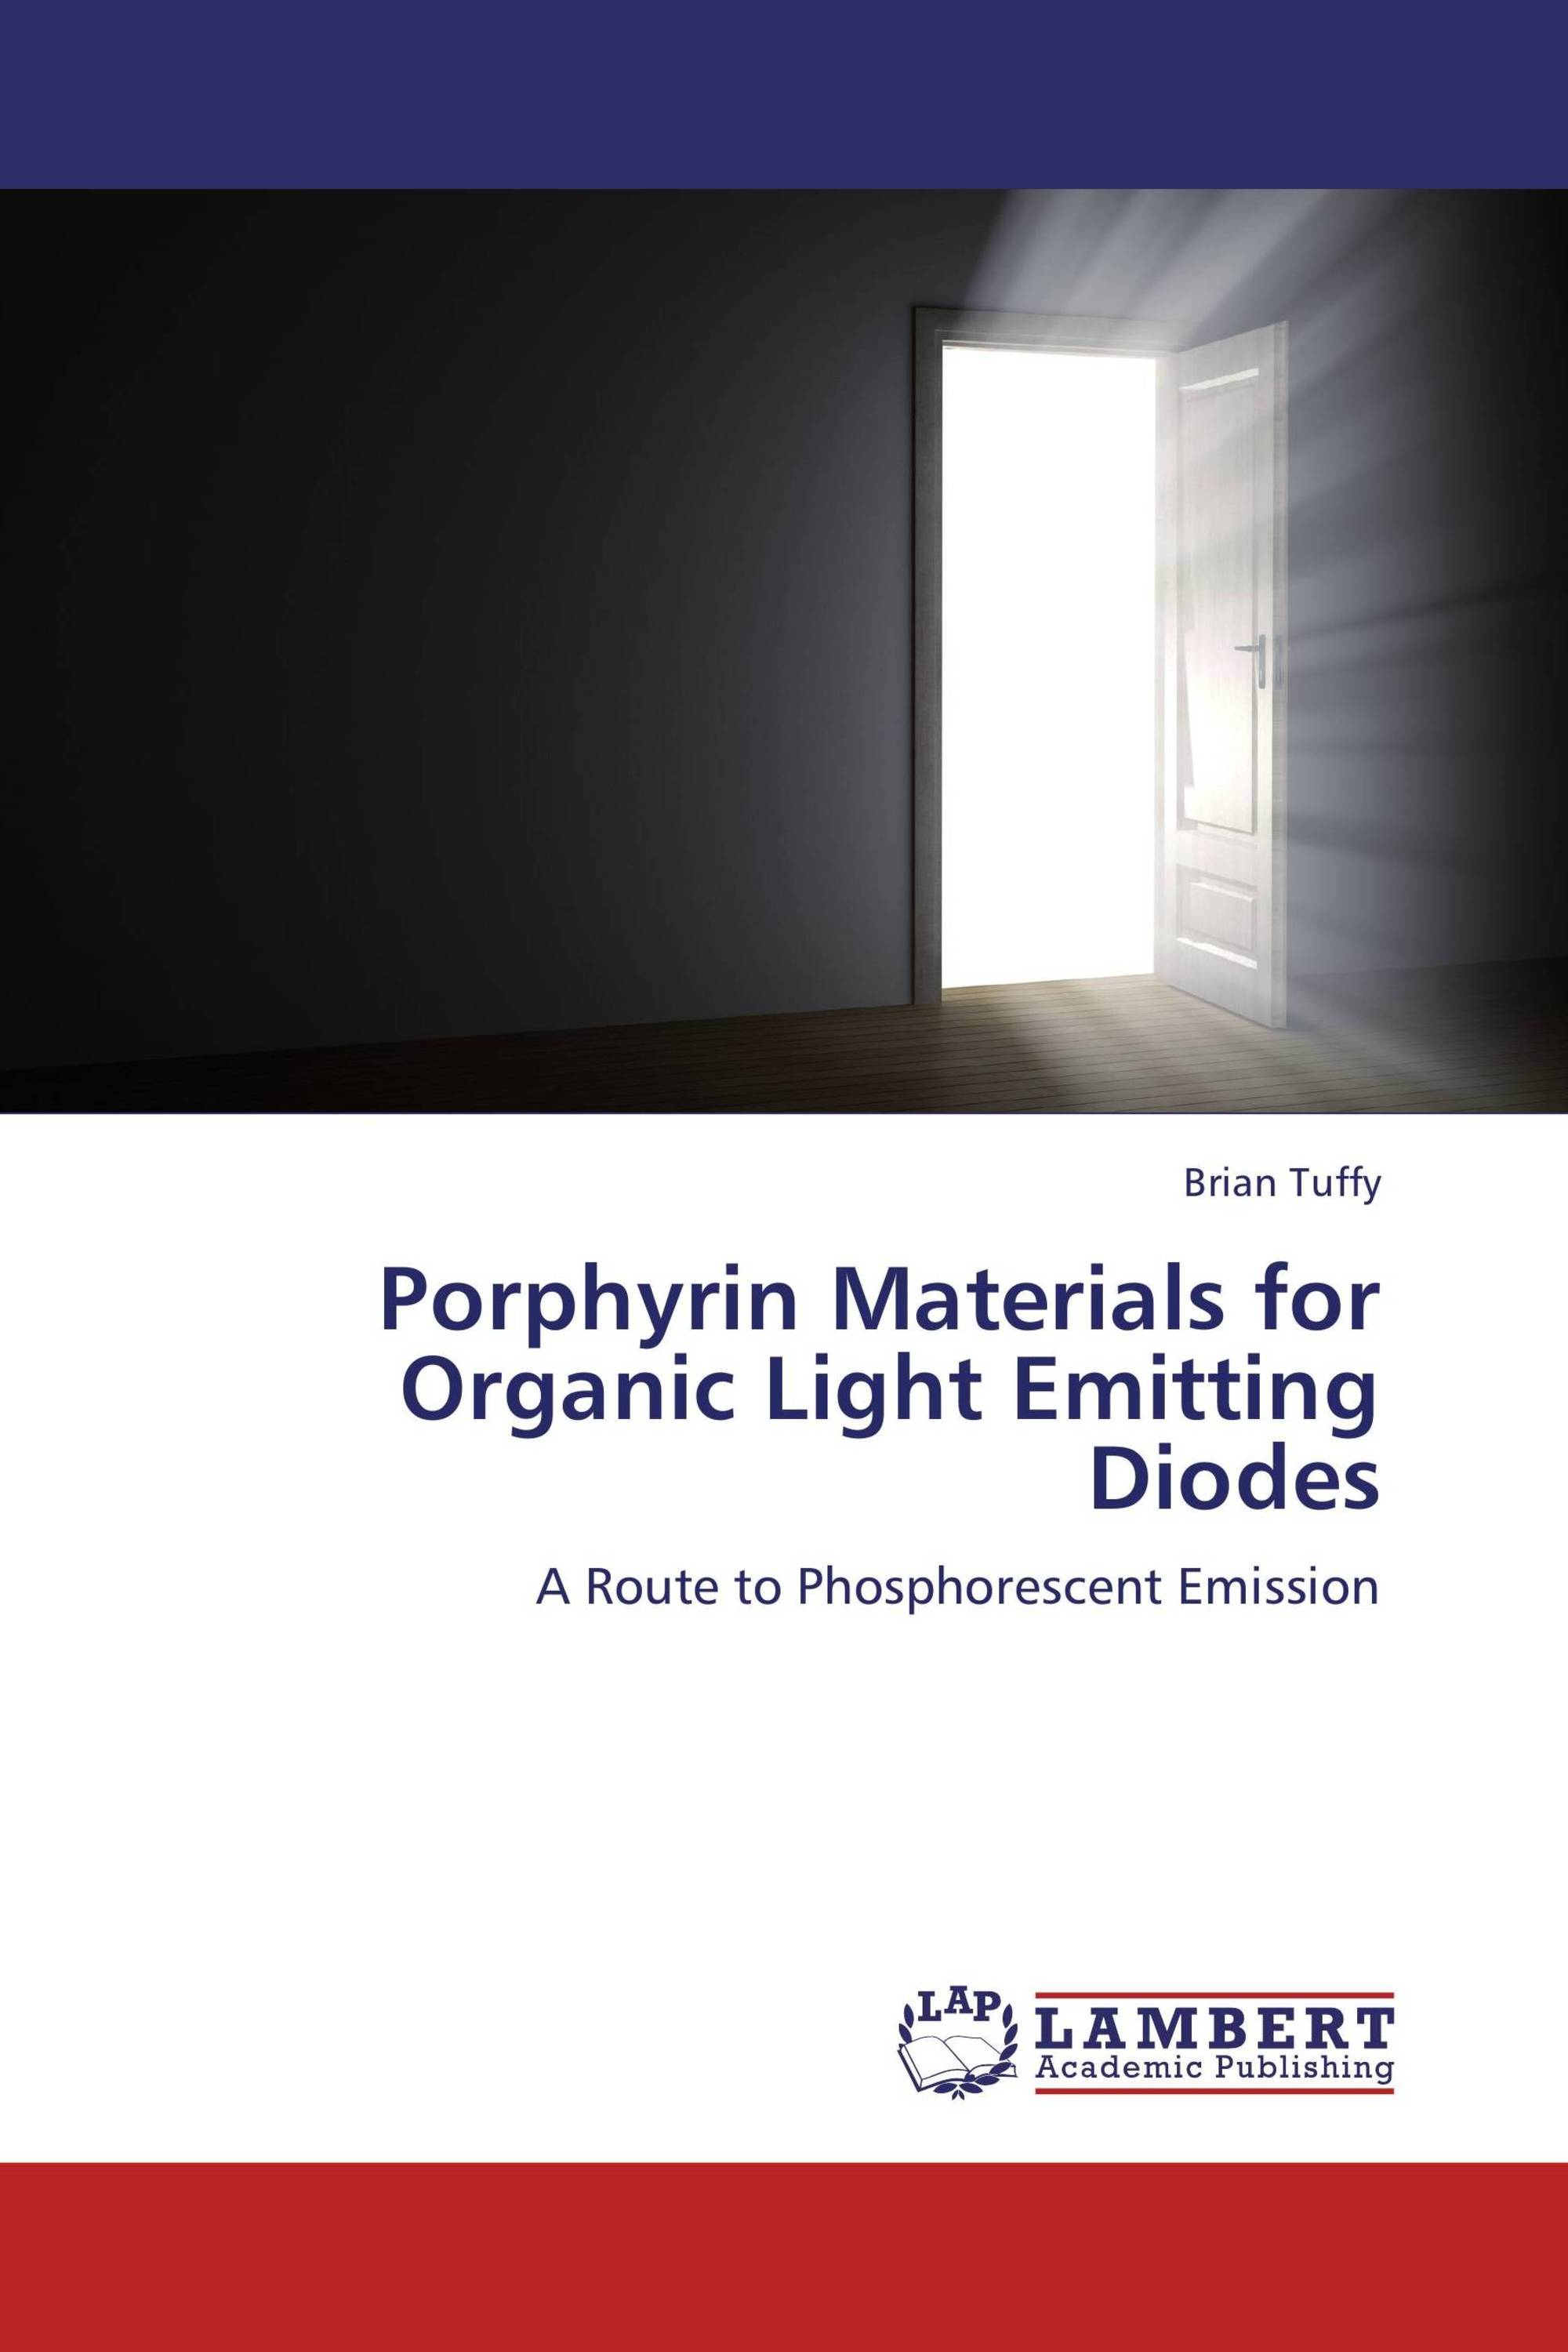 Porphyrin Materials for Organic Light Emitting Diodes ...